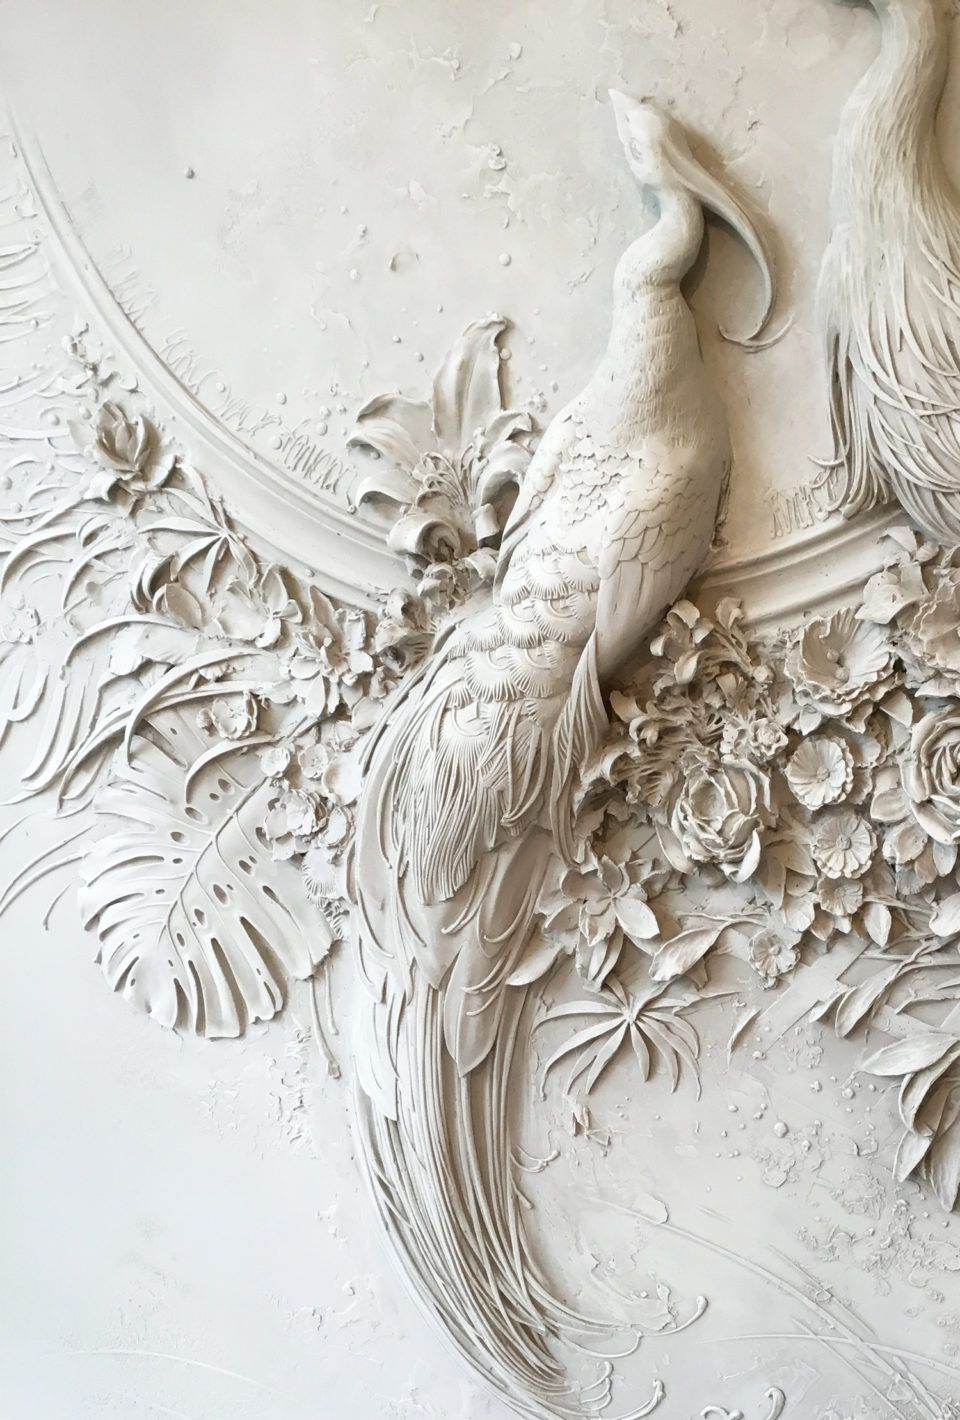 Interior Bas Relief Sculptures Of Peacocks And Lush Florals By Goga Tandashvili Relief Sculpture Plaster Wall Art Plaster Art